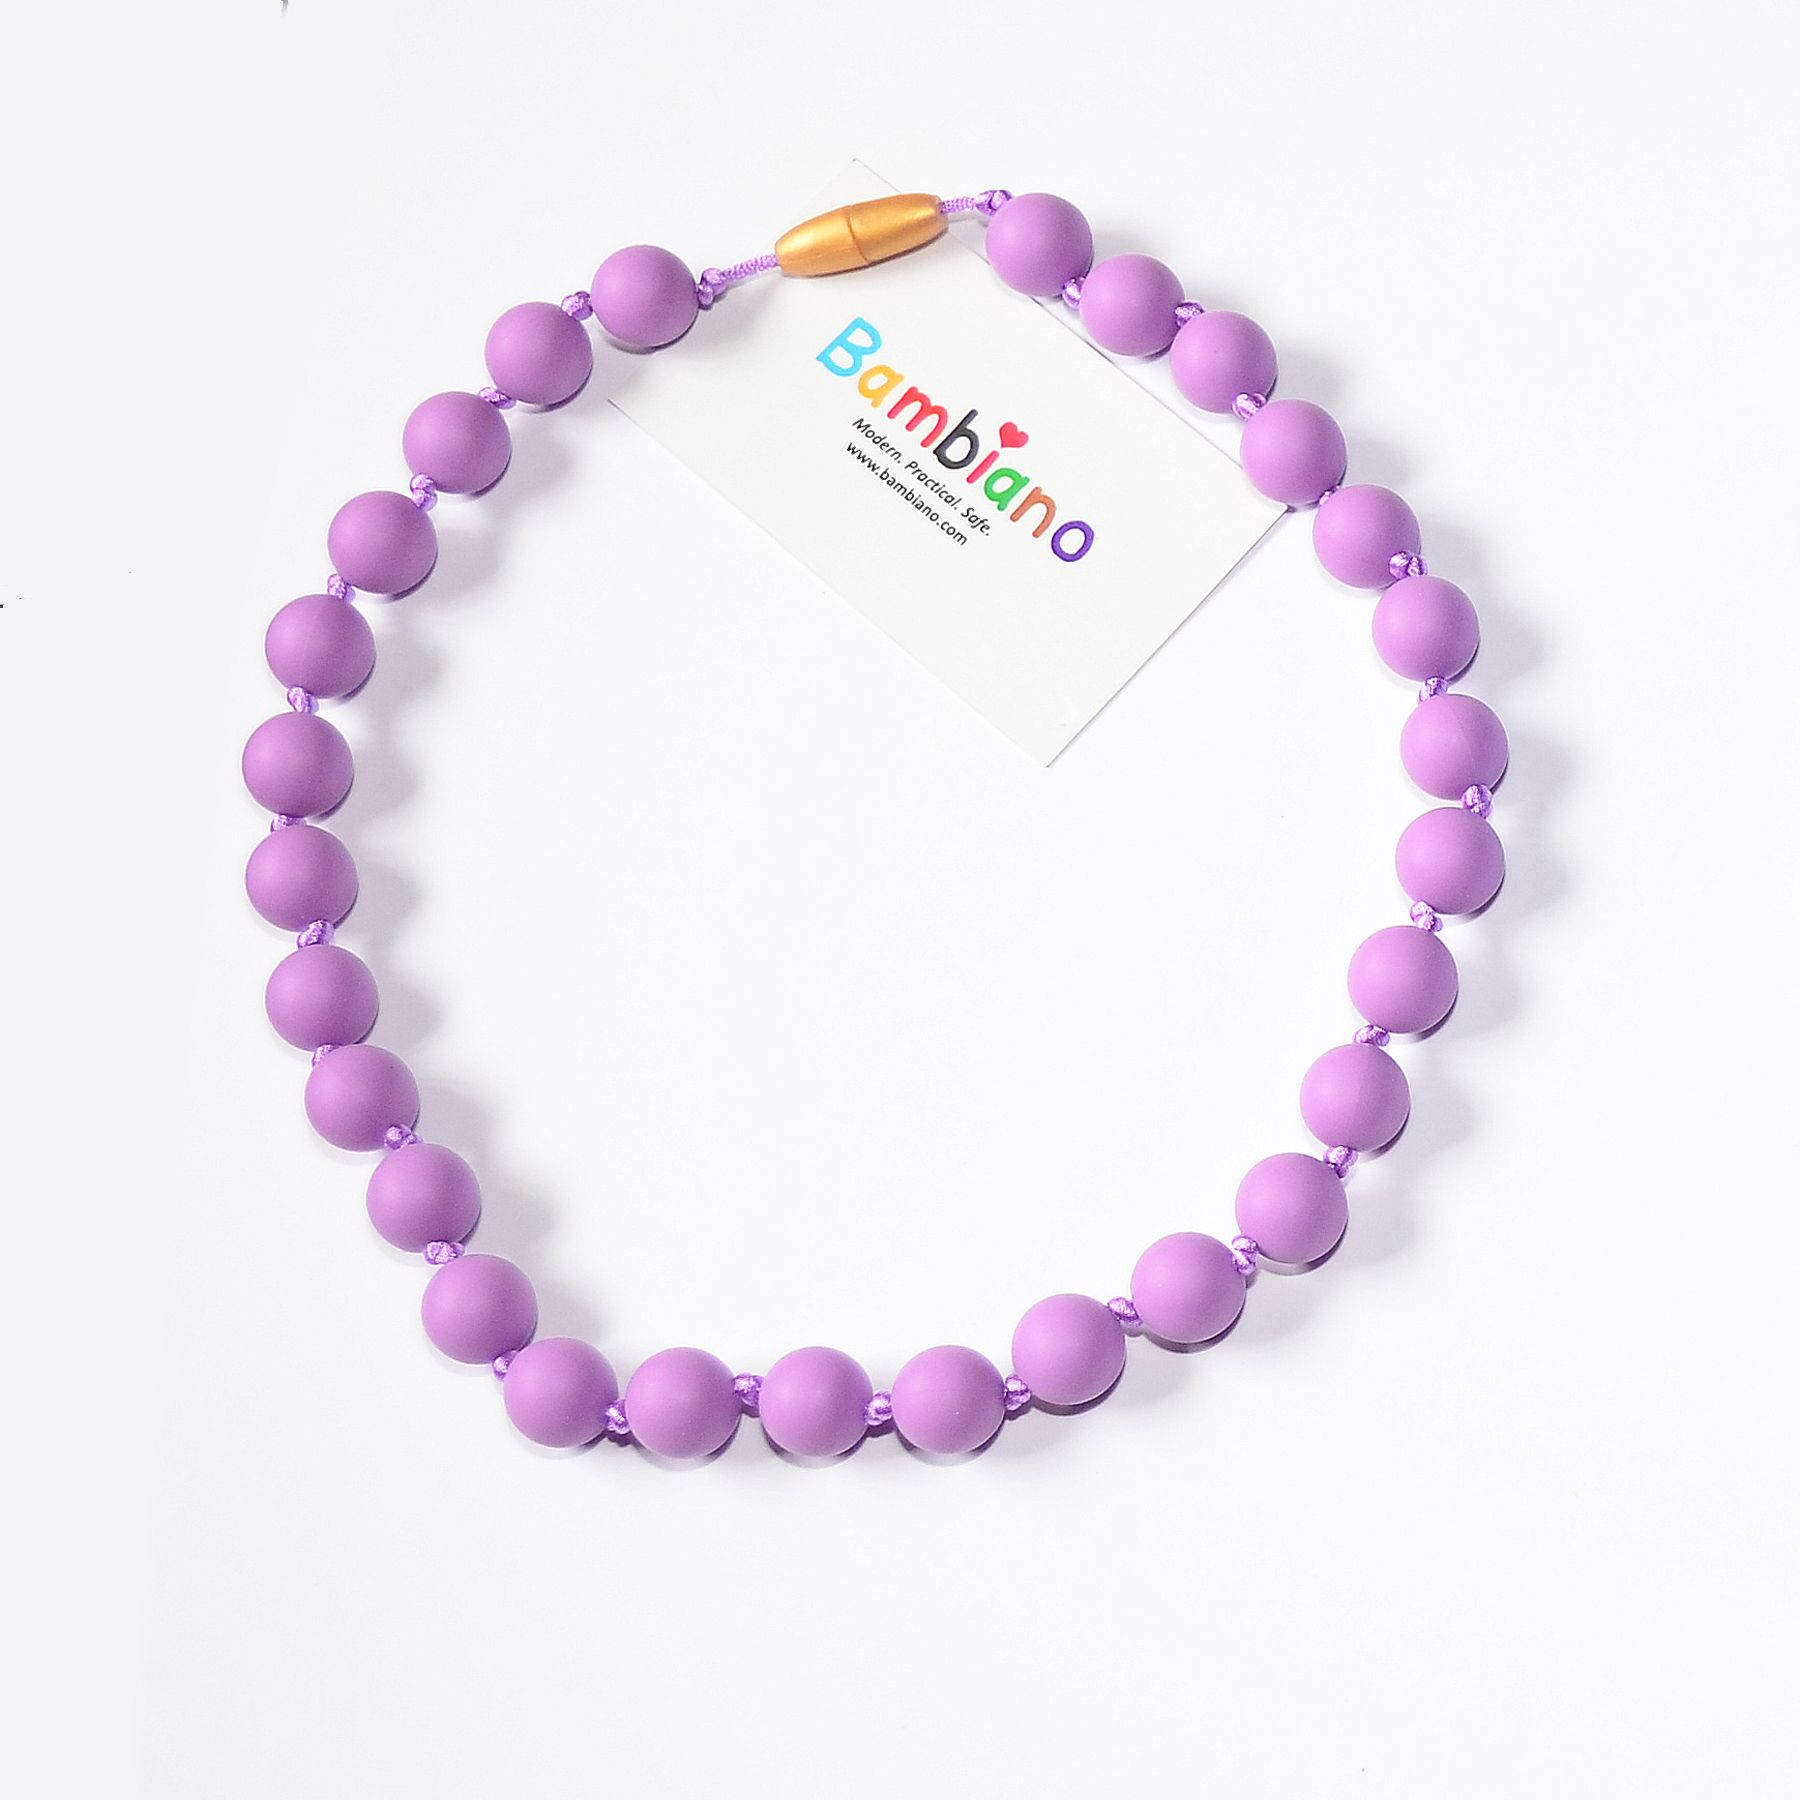 Bambiano Nicole Jr Necklace in Purple. Bambiano Jr Necklaces are made of 100% Food grade silicone. BPA free, Lead free and nontoxic. Fashionable for trendy girls 3 years and above. Necklaces are colourful, washable and soft against the skin. Shop at www.bambiano.com